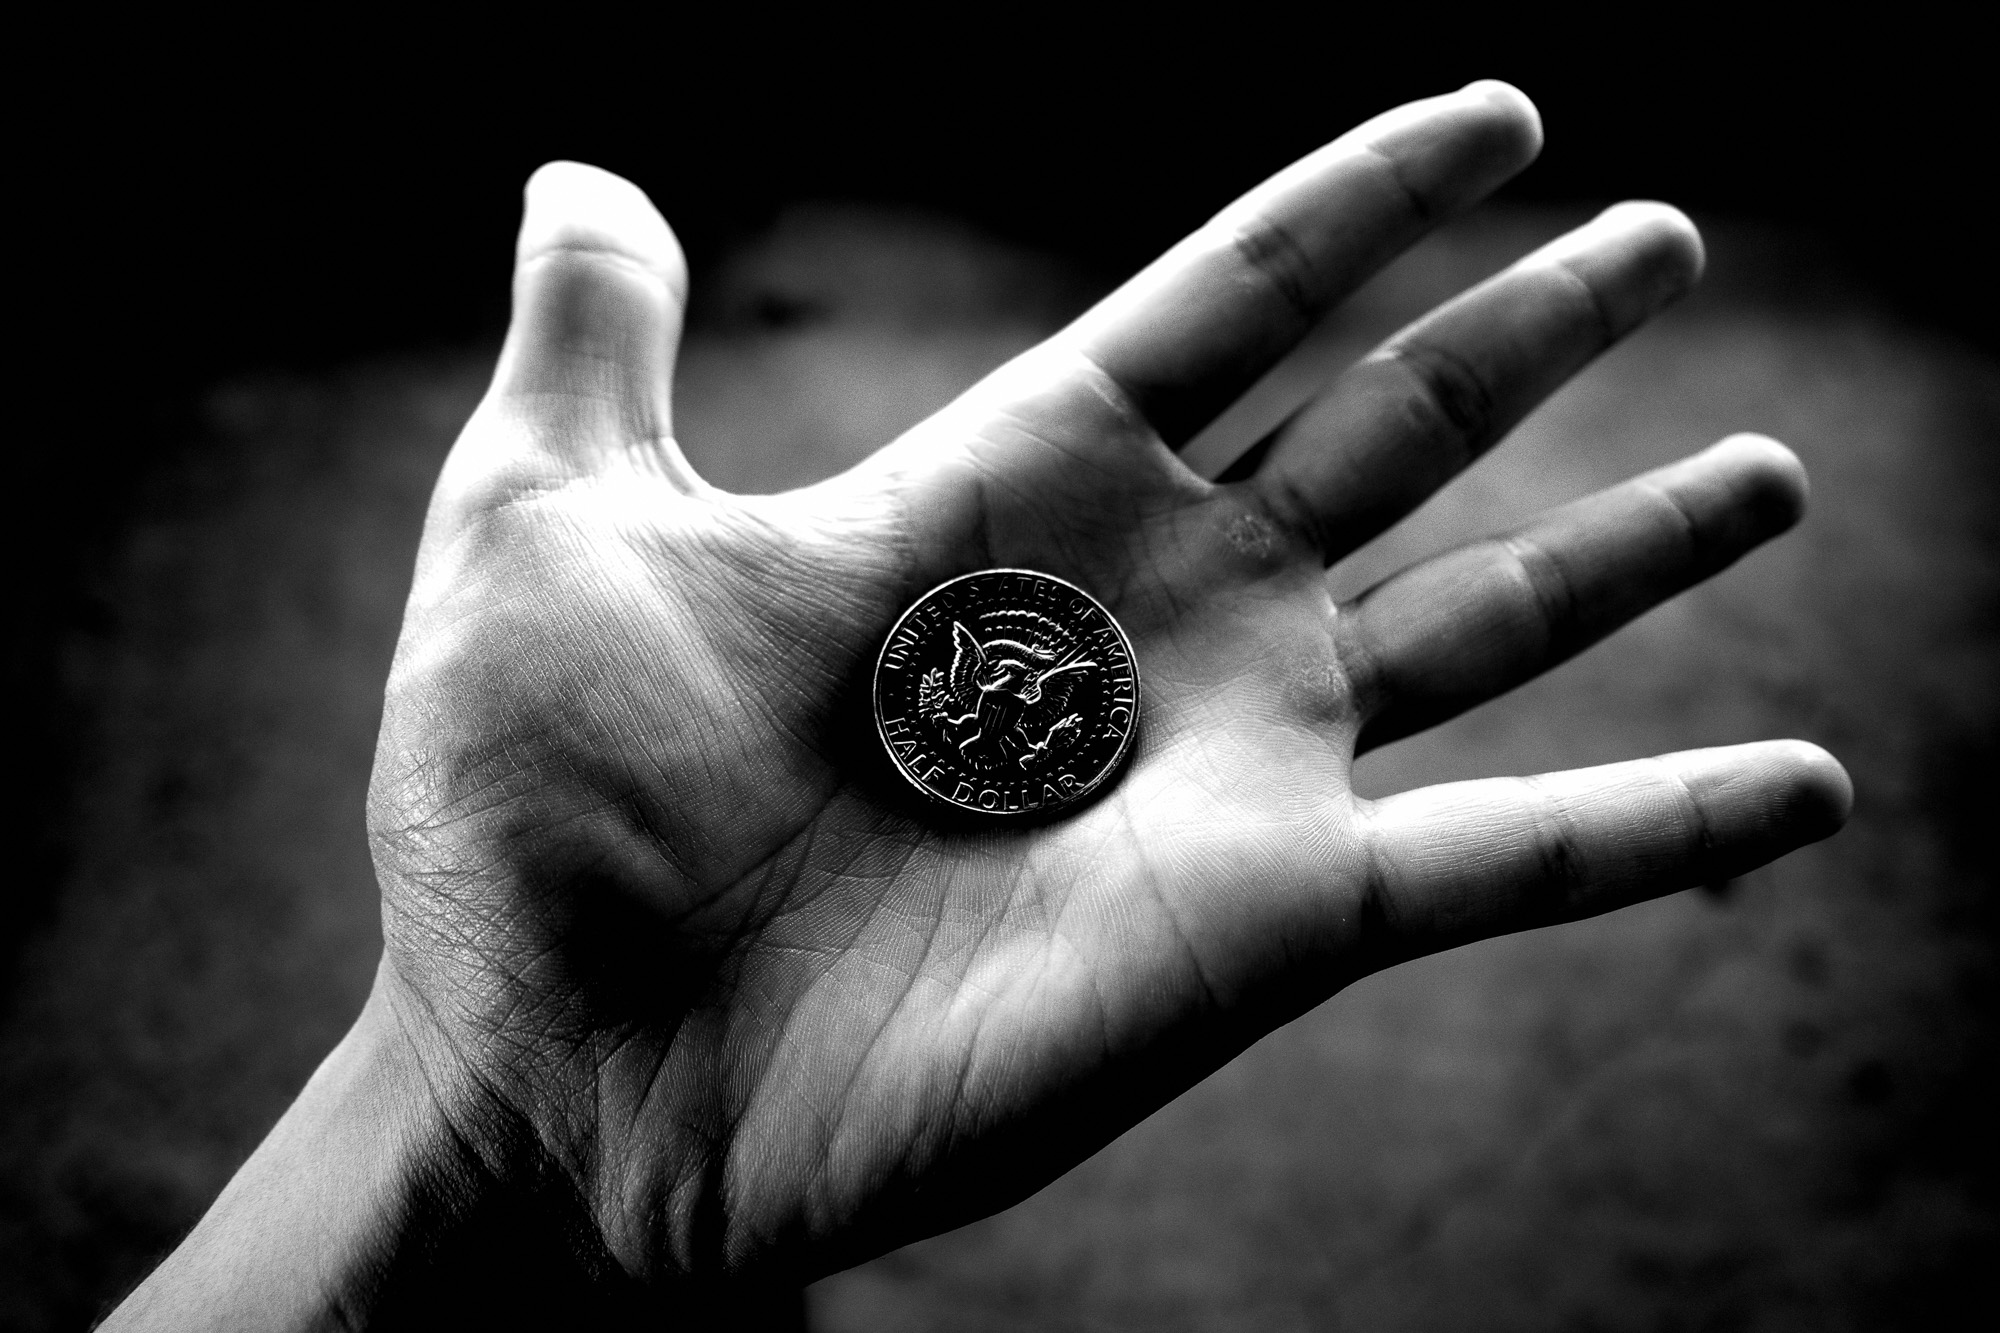 Hand coin